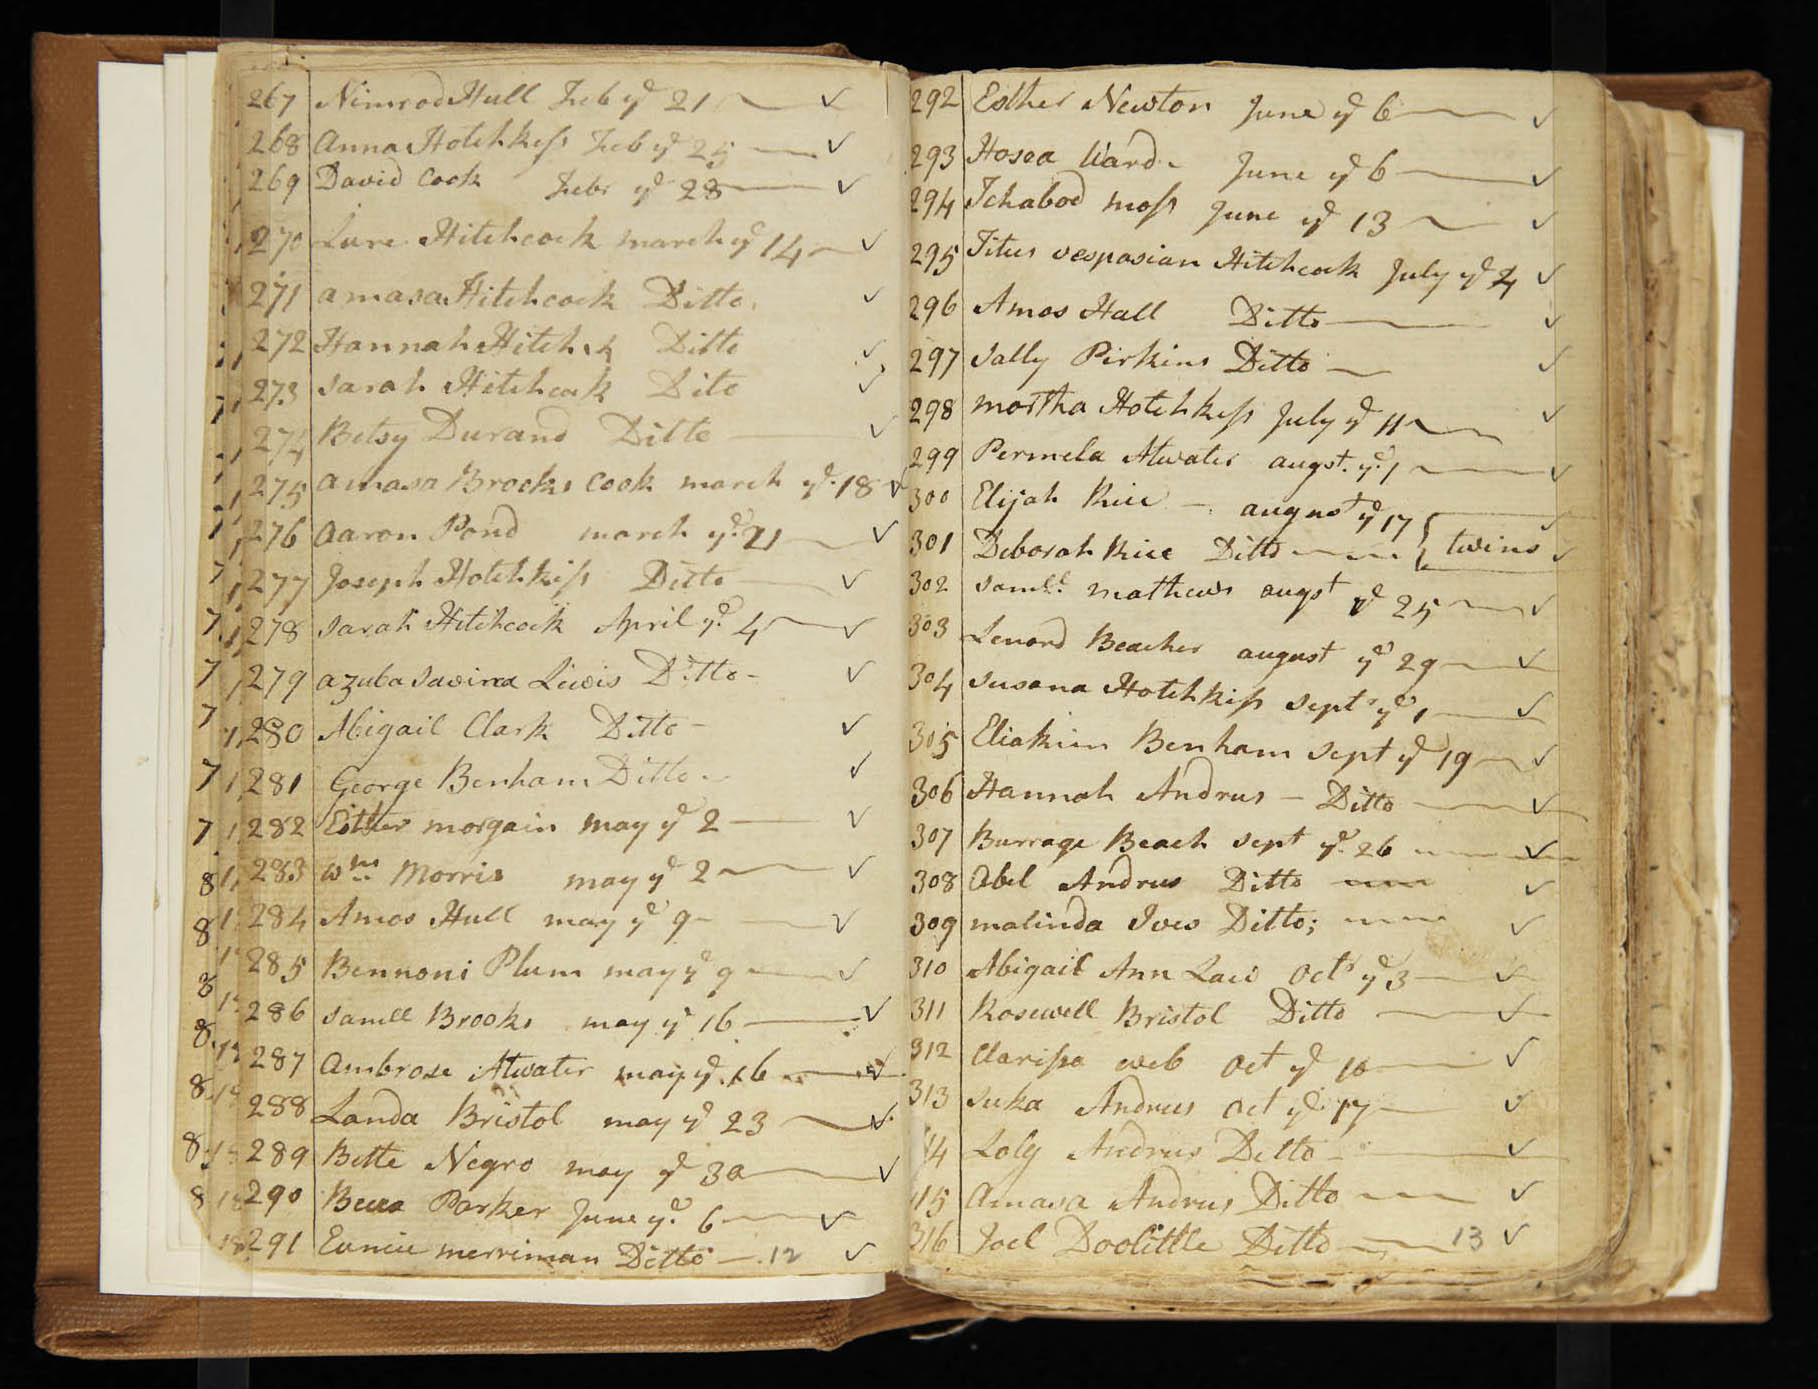 Parson Foot's baptism records, 1773